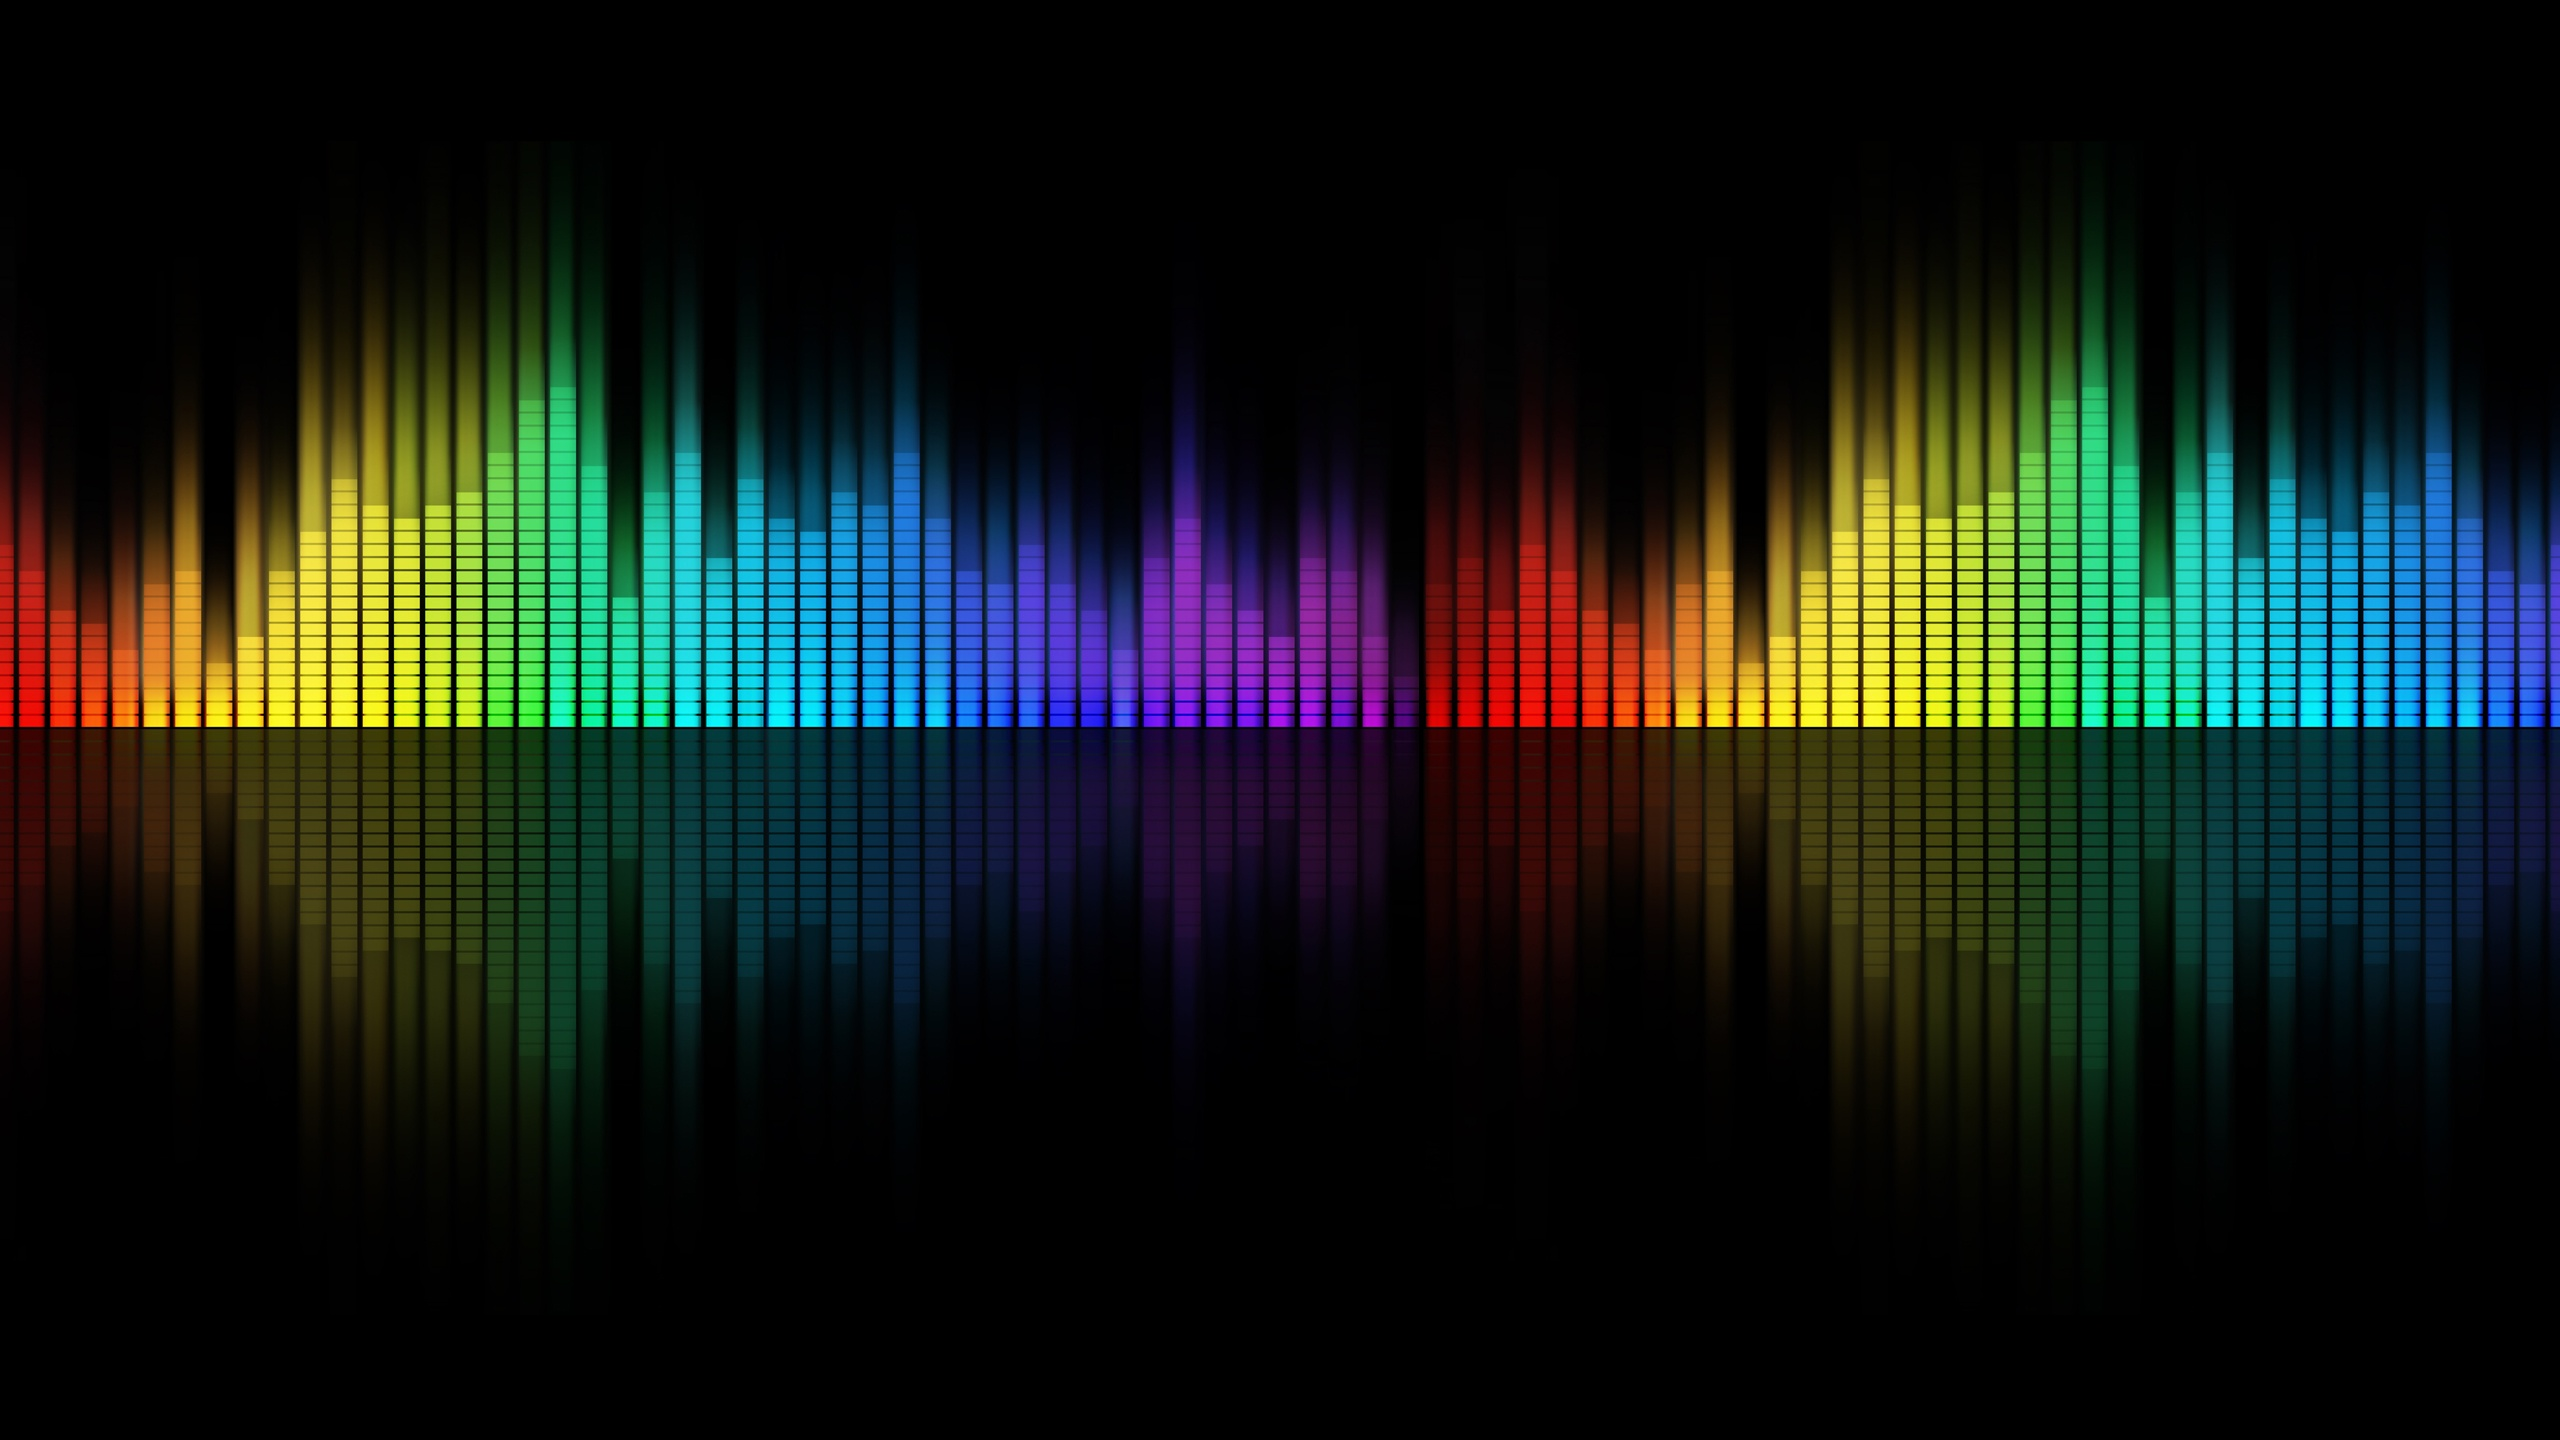 Rainbow music visualizer (no placeholder version (up to 10 min.